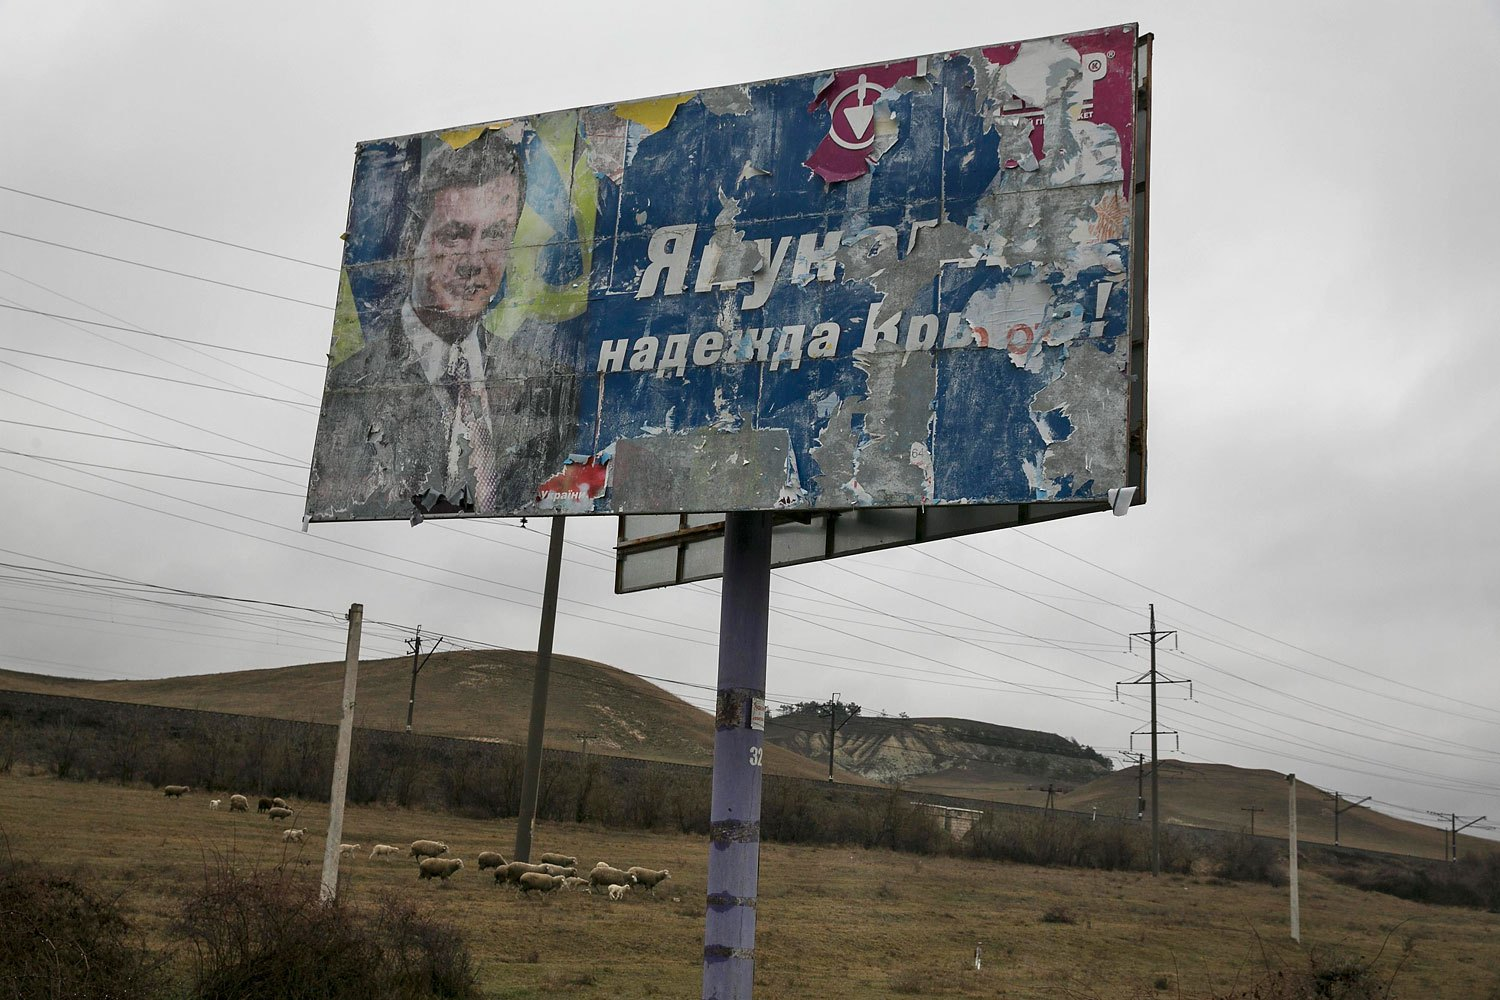 """Sheep graze next to an old election sign on a road from Simferopol to Sevastopol reads """"Yanukovych is the hope of Crimea"""", Feb. 27, 2014."""